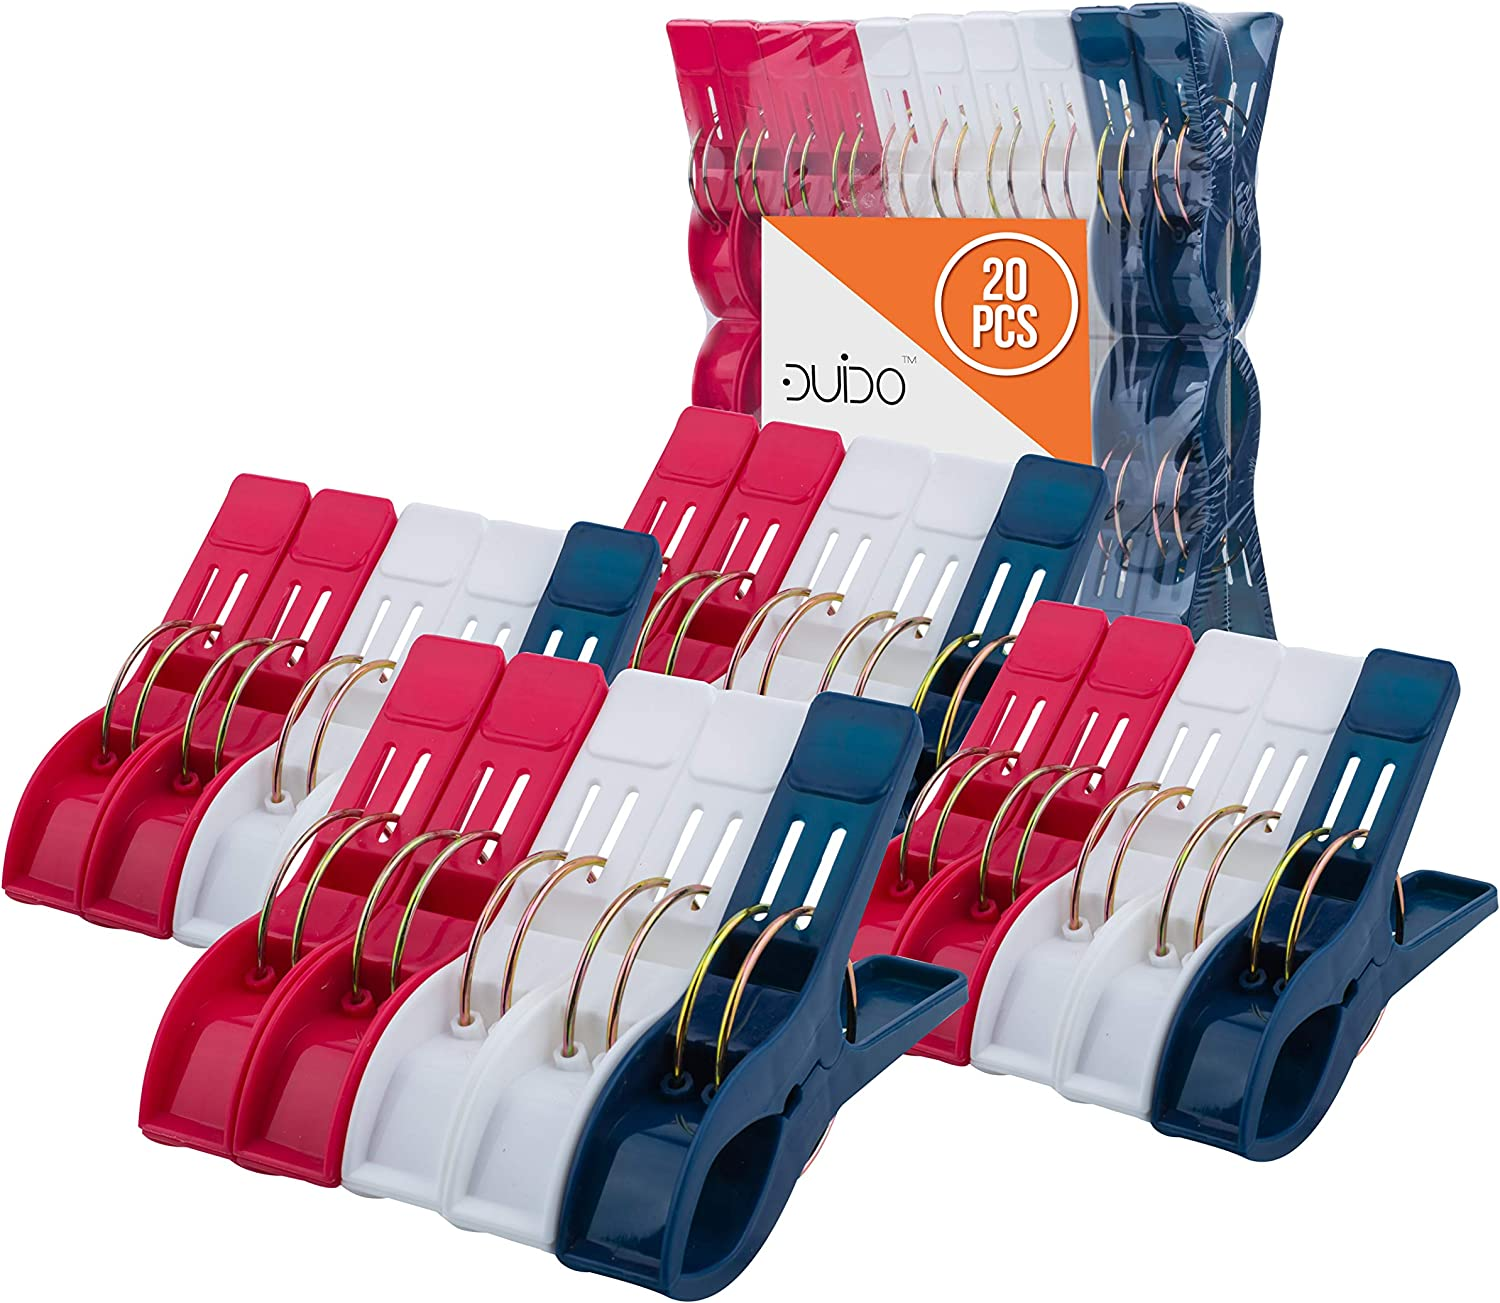 Beach Chair Towel Clips Clamps - 20 Pack Pool Towel Holder and Large Plastic Clamp - Red, White and Blue Jumbo Clothespins and Towel Pegs - Heavy Duty Clips for Laundry, Beach, Pool or Cruise Ships